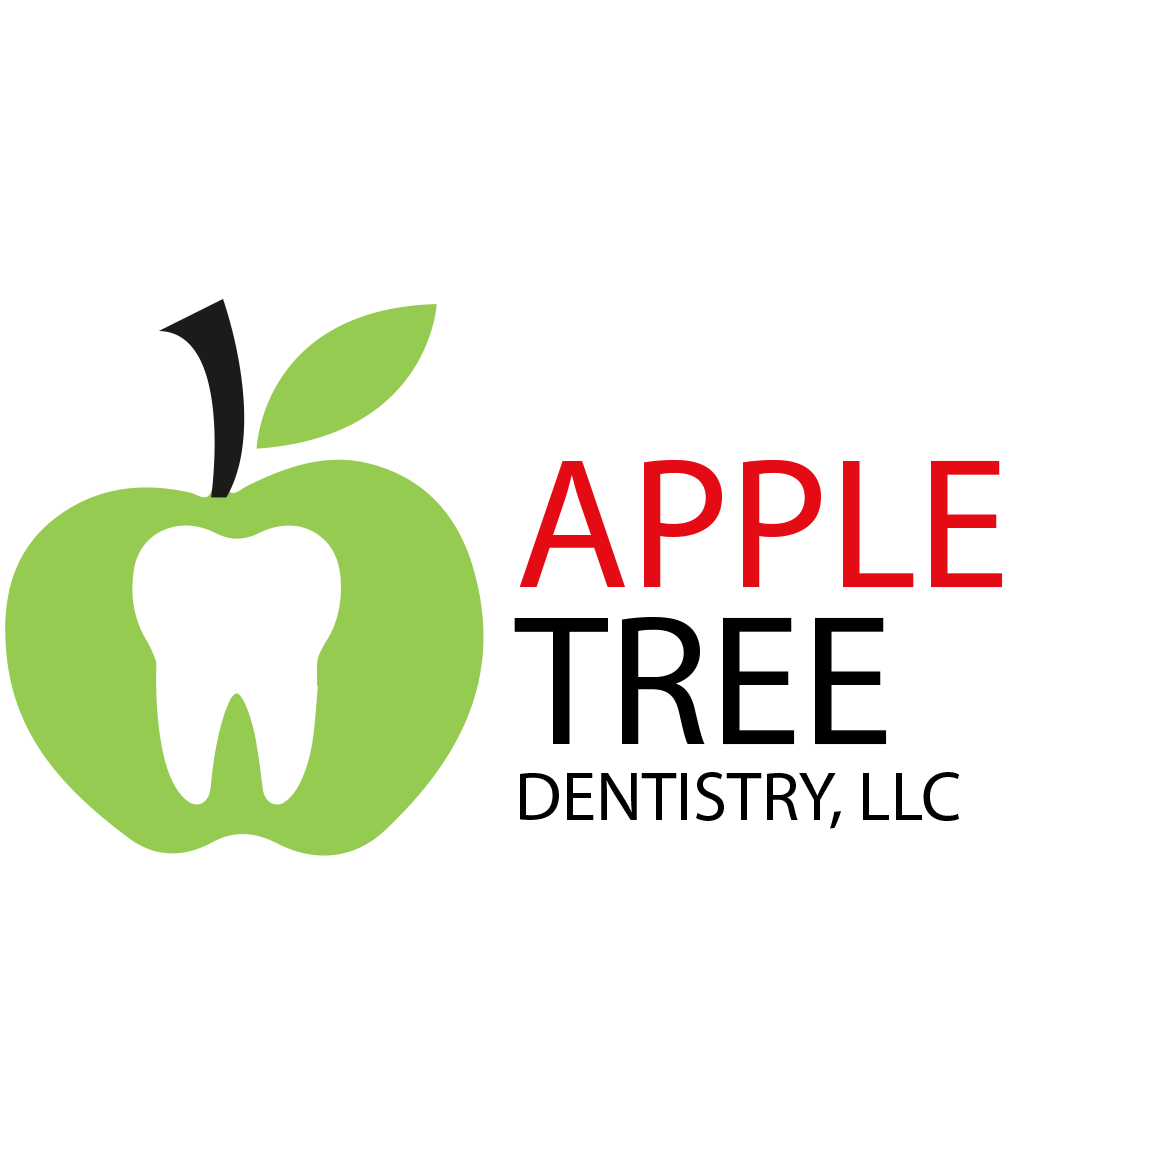 Apple Tree Dentistry Llc Avondale Arizona Az